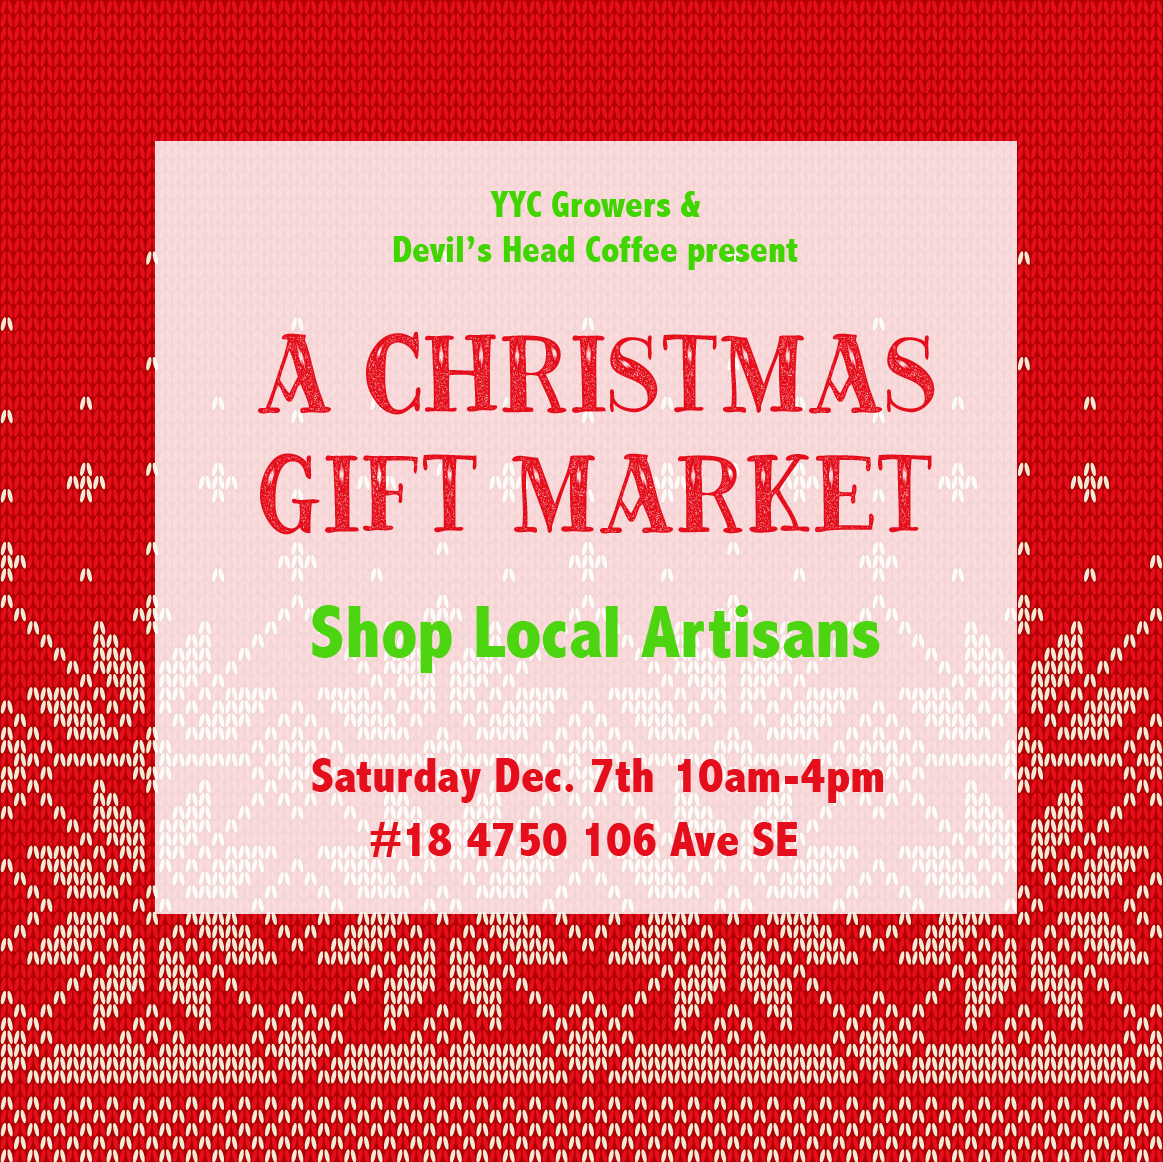 A Christmas Gift Market - Shop Local Calgary Artisans